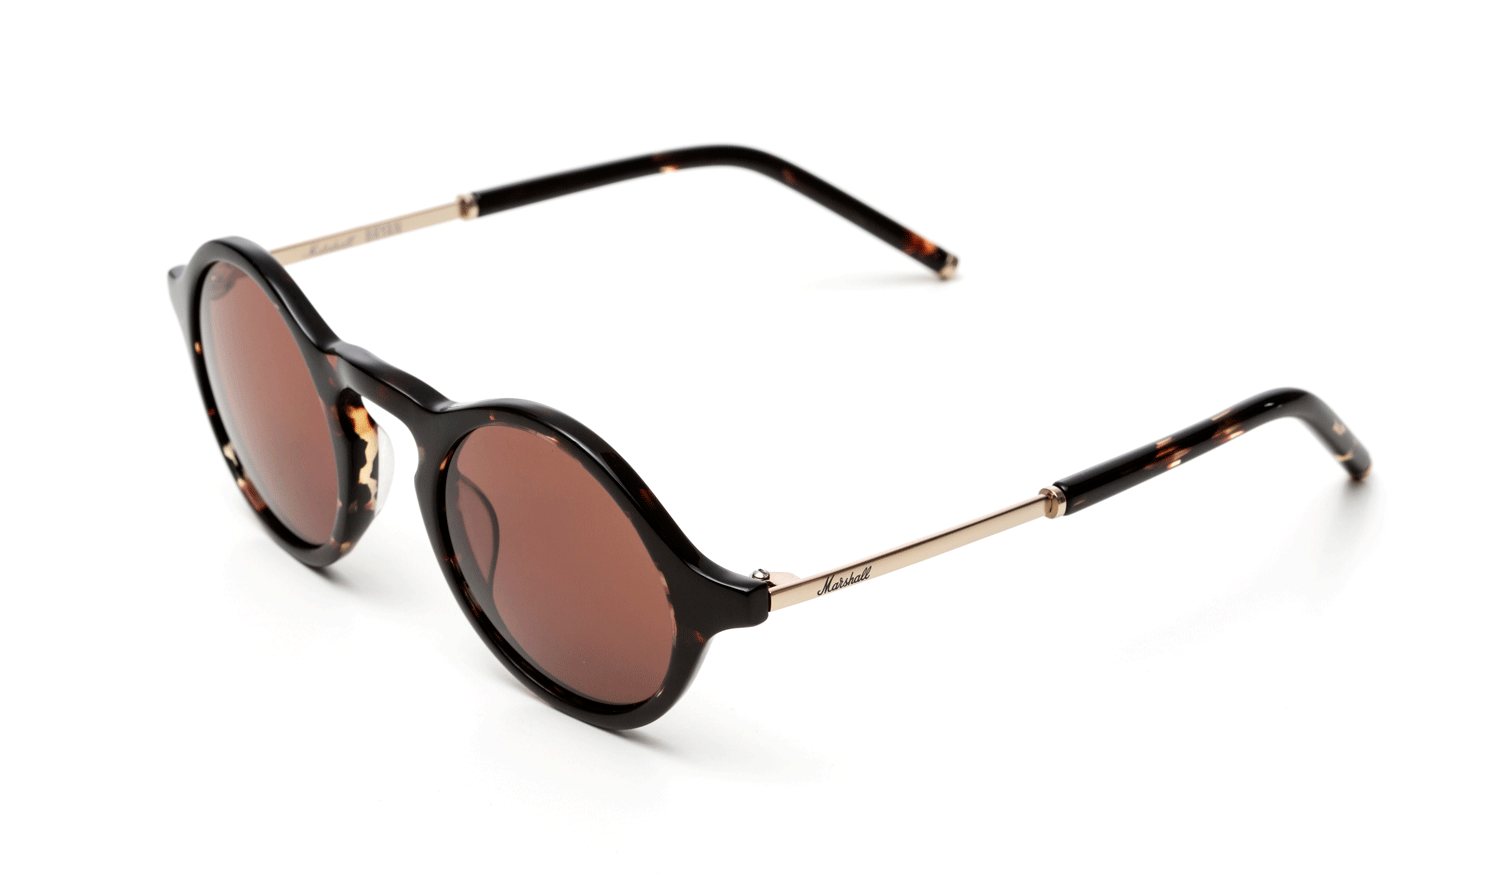 Bryan Sunglasses - Havana Nights